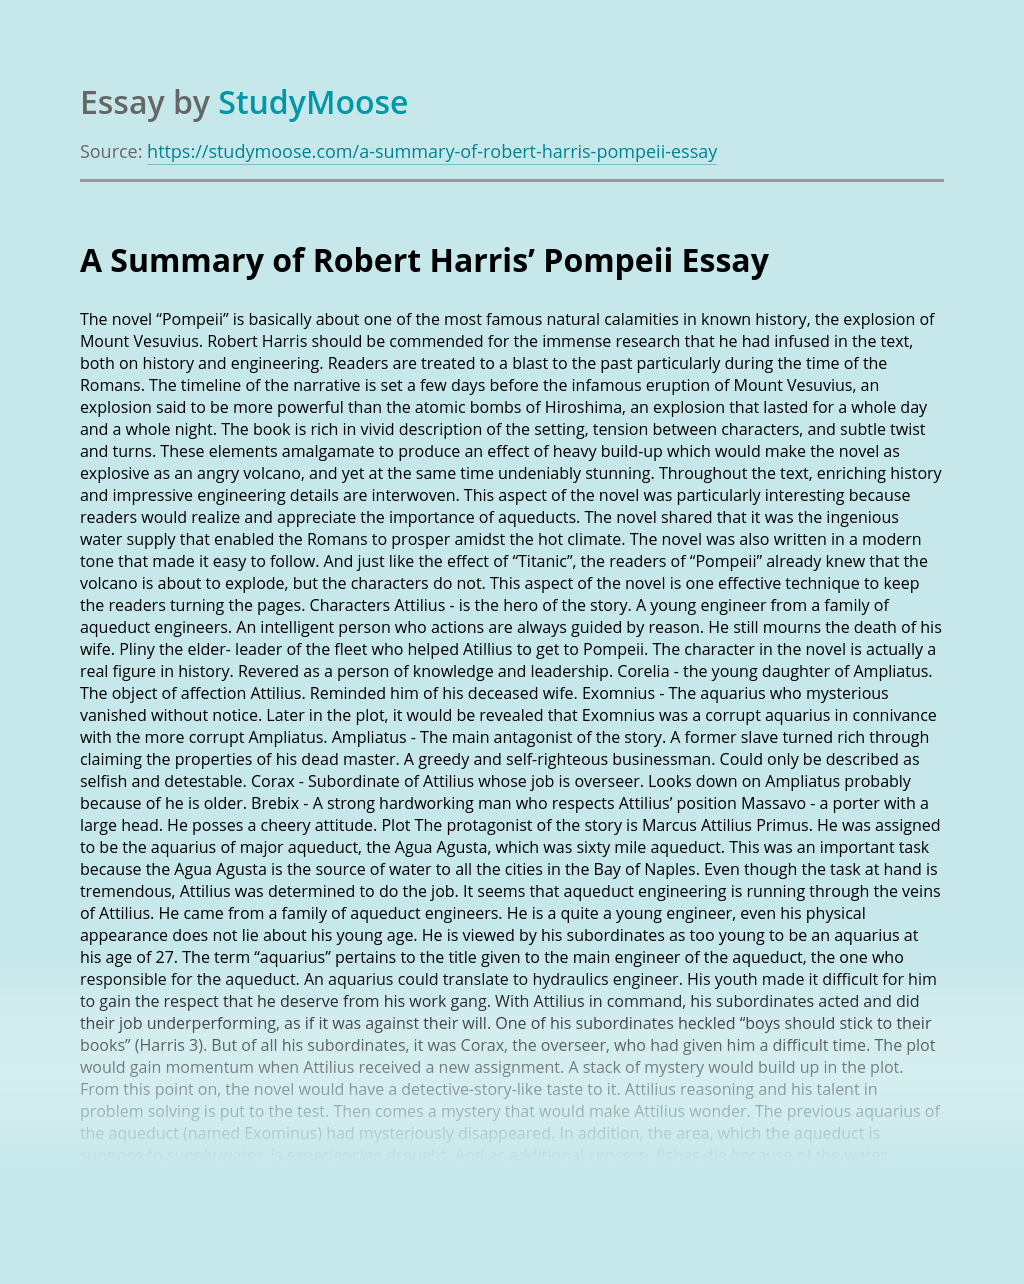 A Summary of Robert Harris' Pompeii